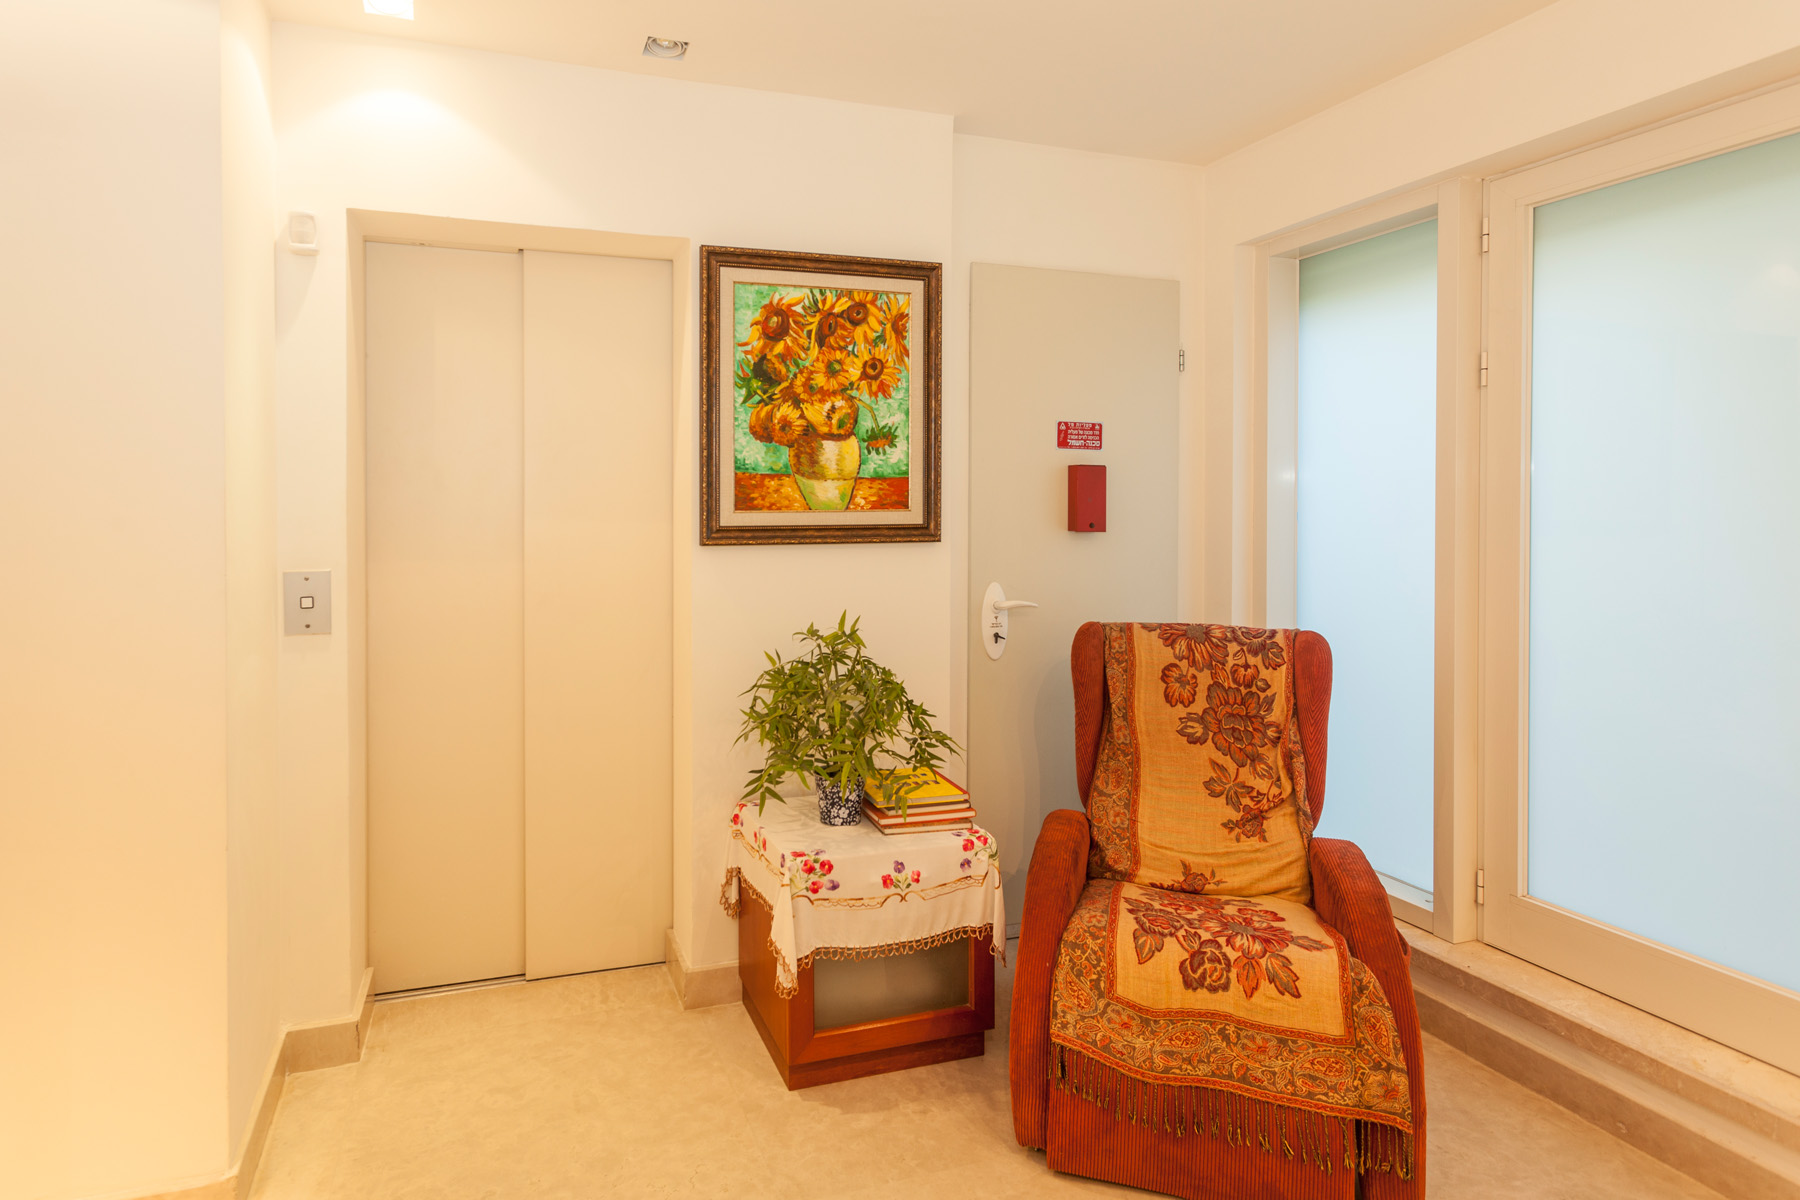 Additional photo for property listing at Elegant bright and functional house in Ramat Gan 拉马特甘, 以色列 以色列